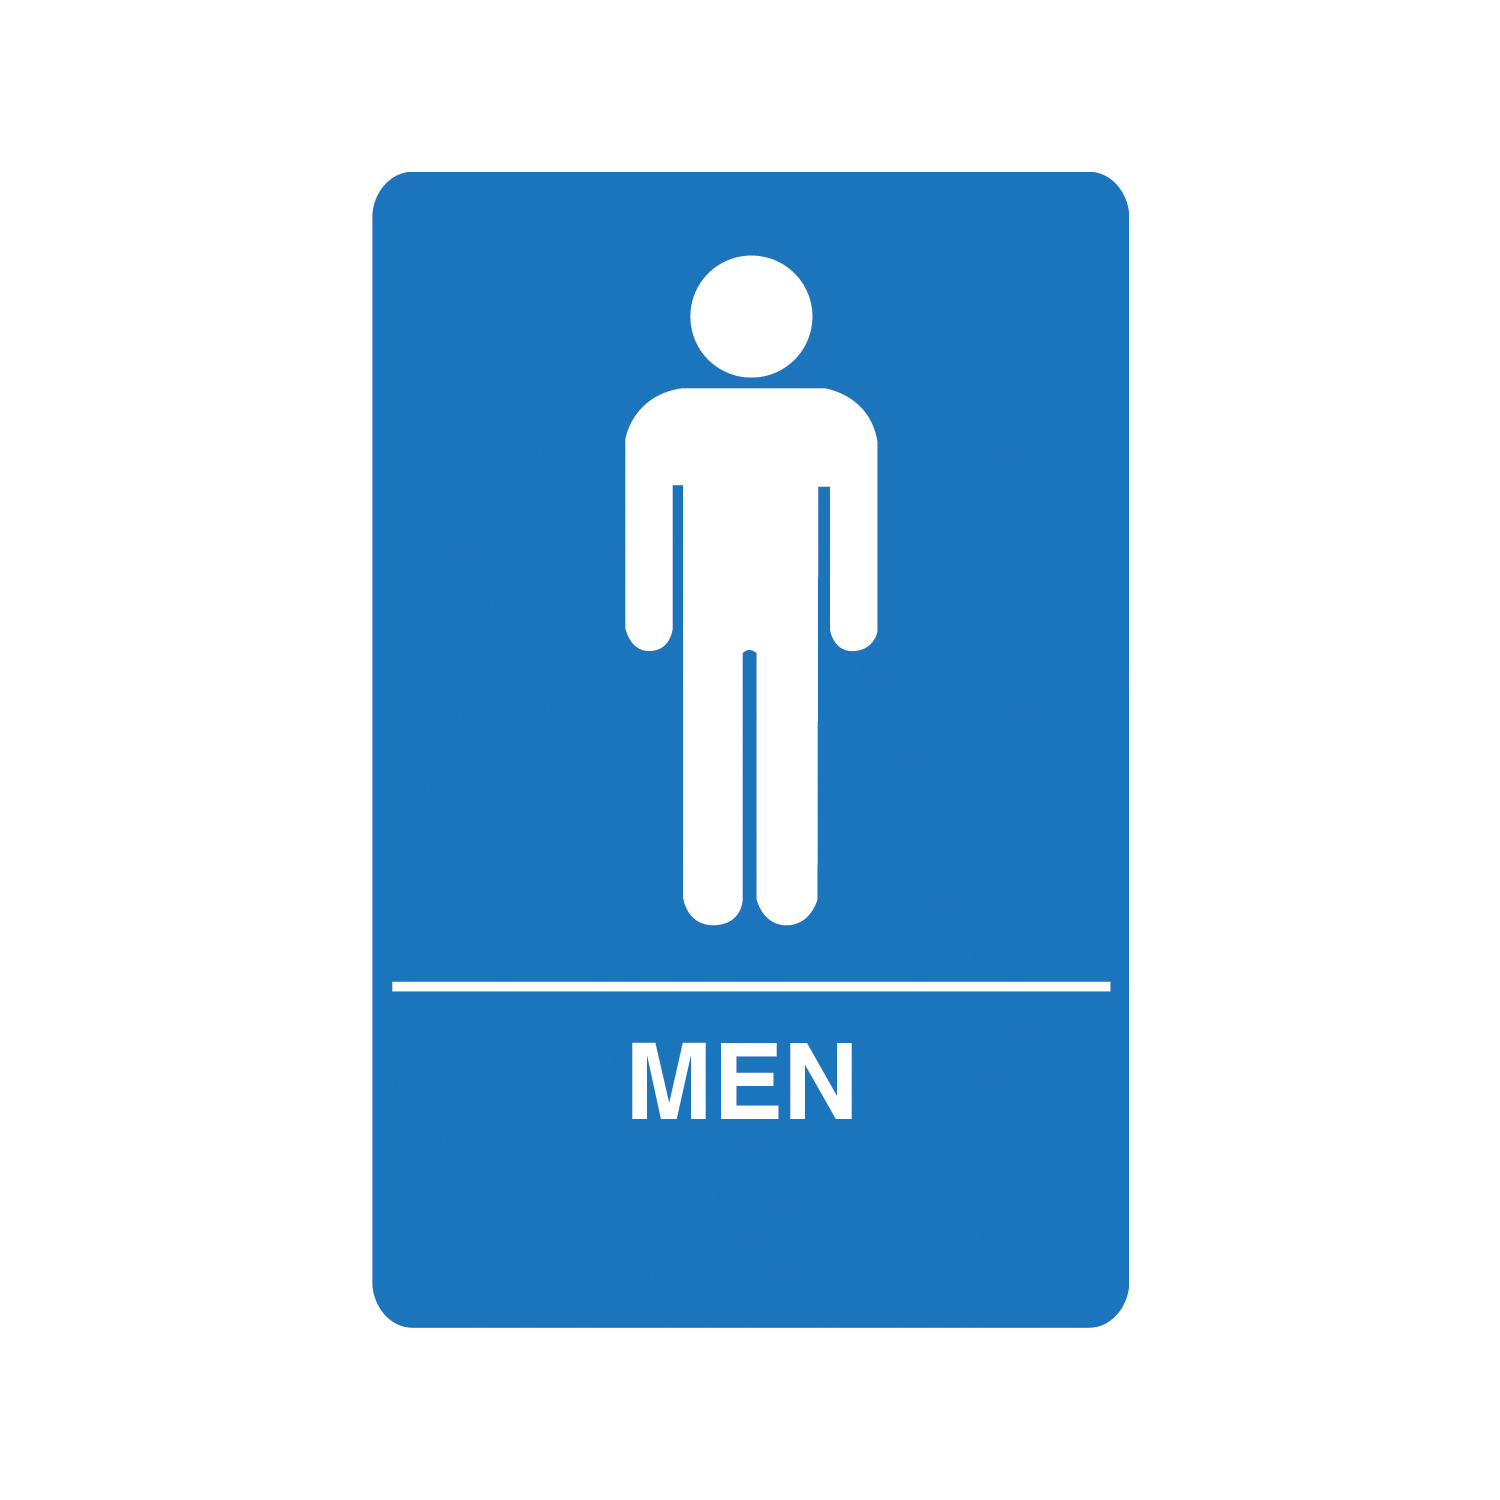 Girls bathroom sign outline -  Bathroom Signs Man Clipart Bathroom Shop The Hillman Group 6 In X 9 In Men Handicap Accessible